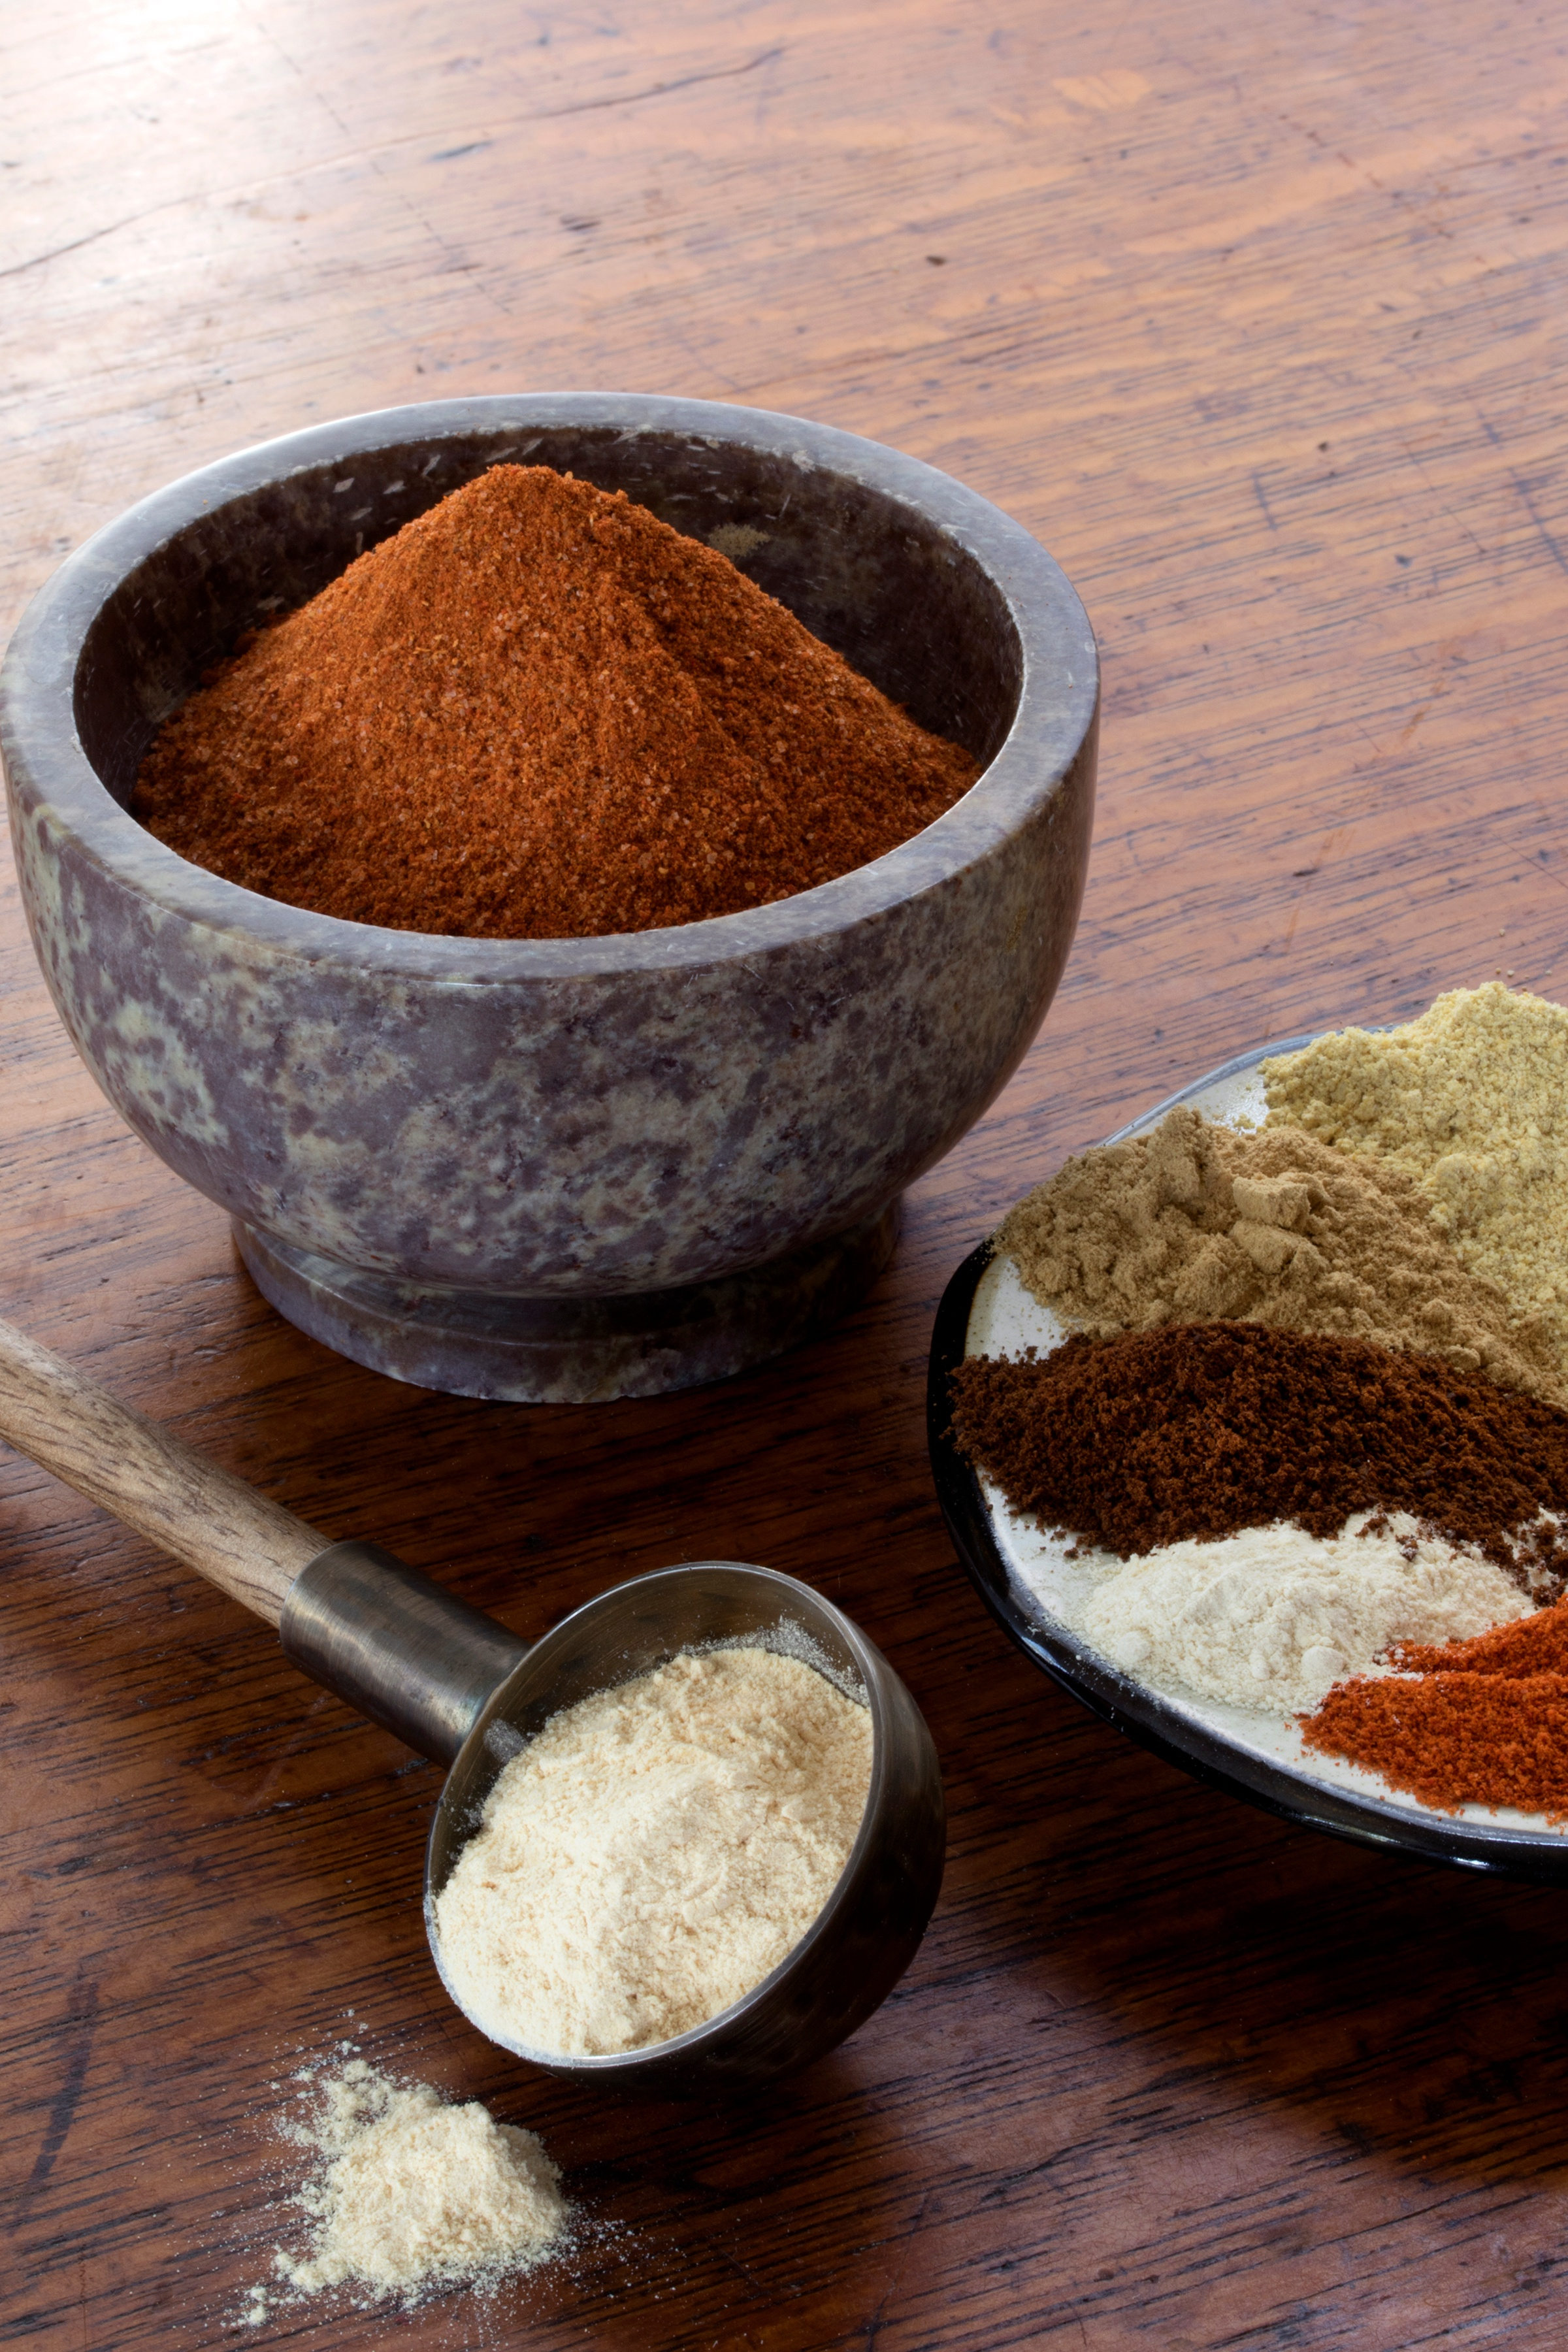 Displayed colorful spice powders